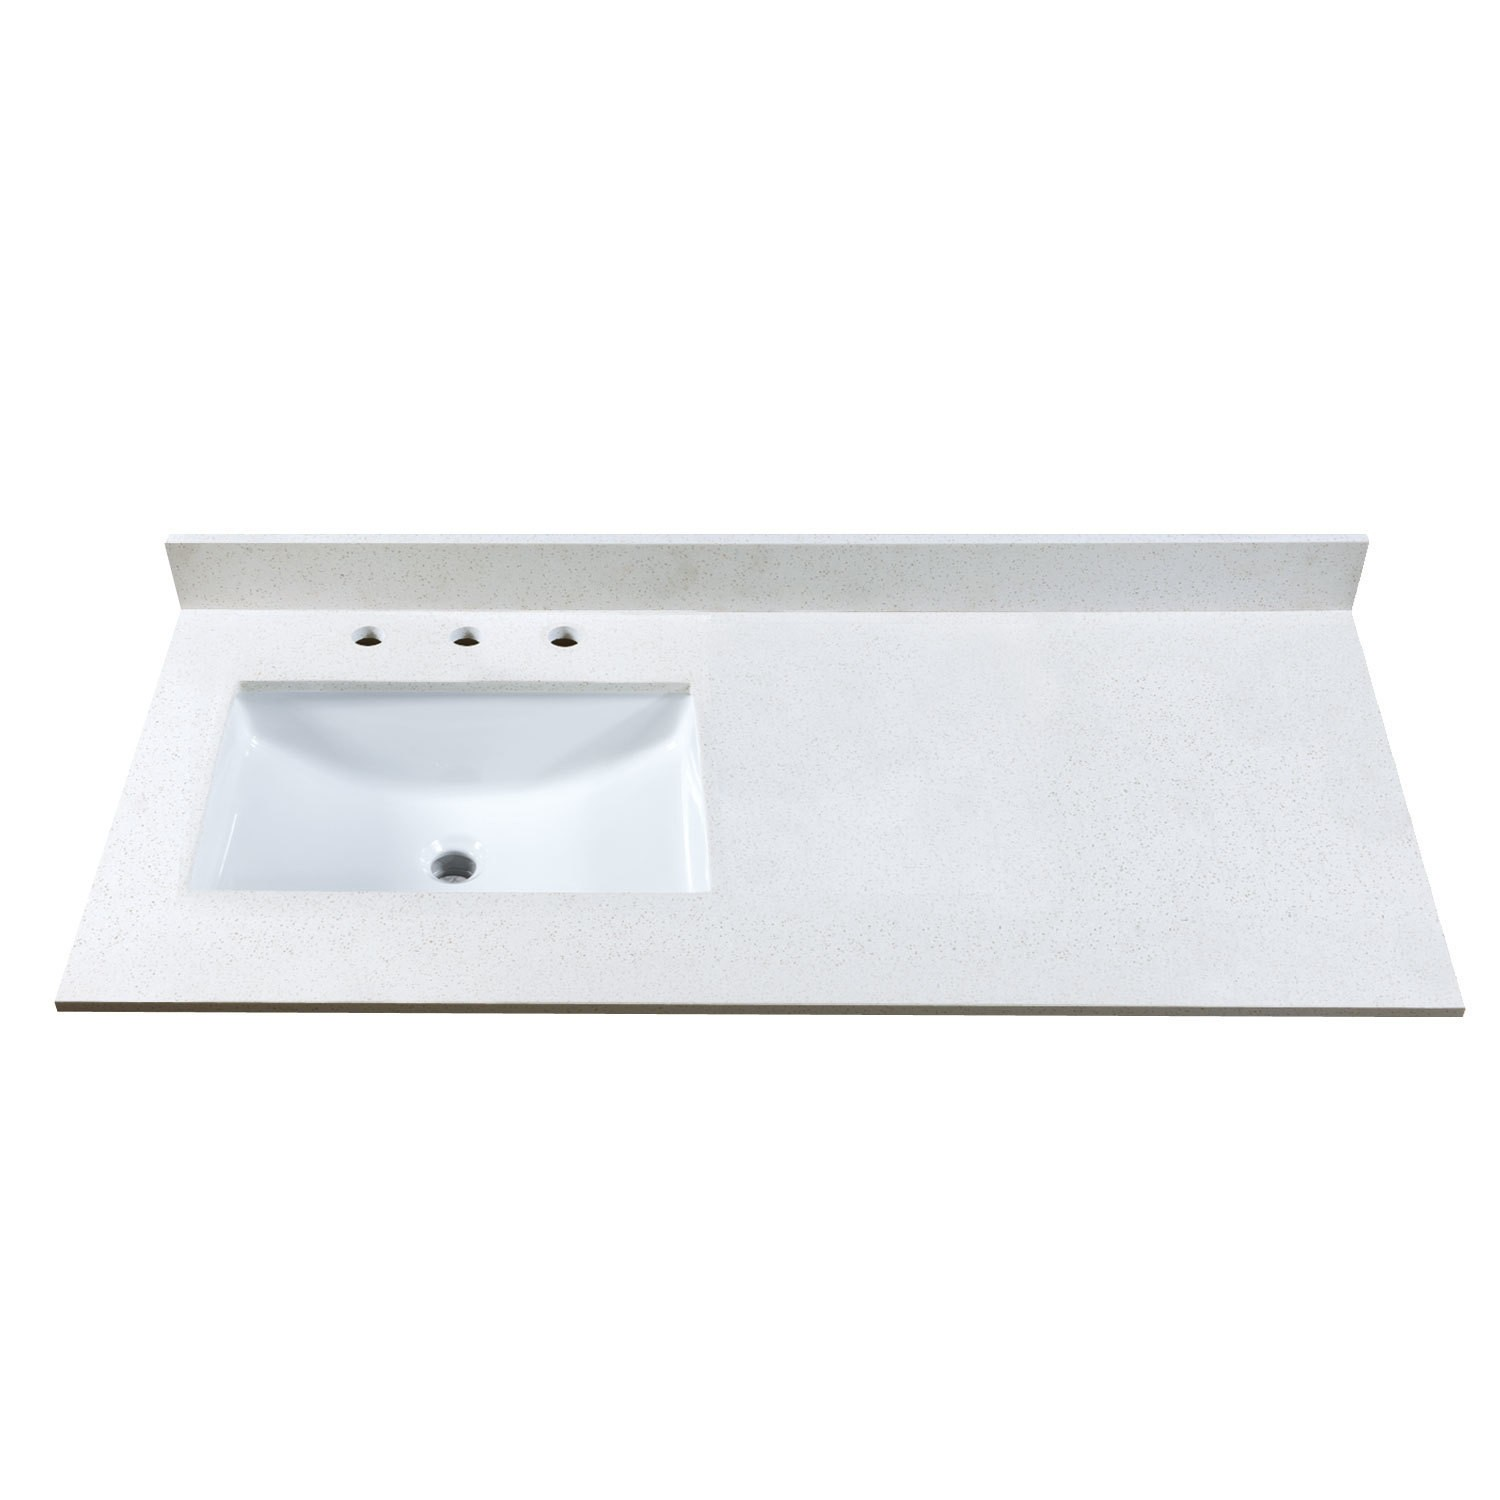 49 stone vanity top w side or center sink cutout and 8 widespread faucet holes